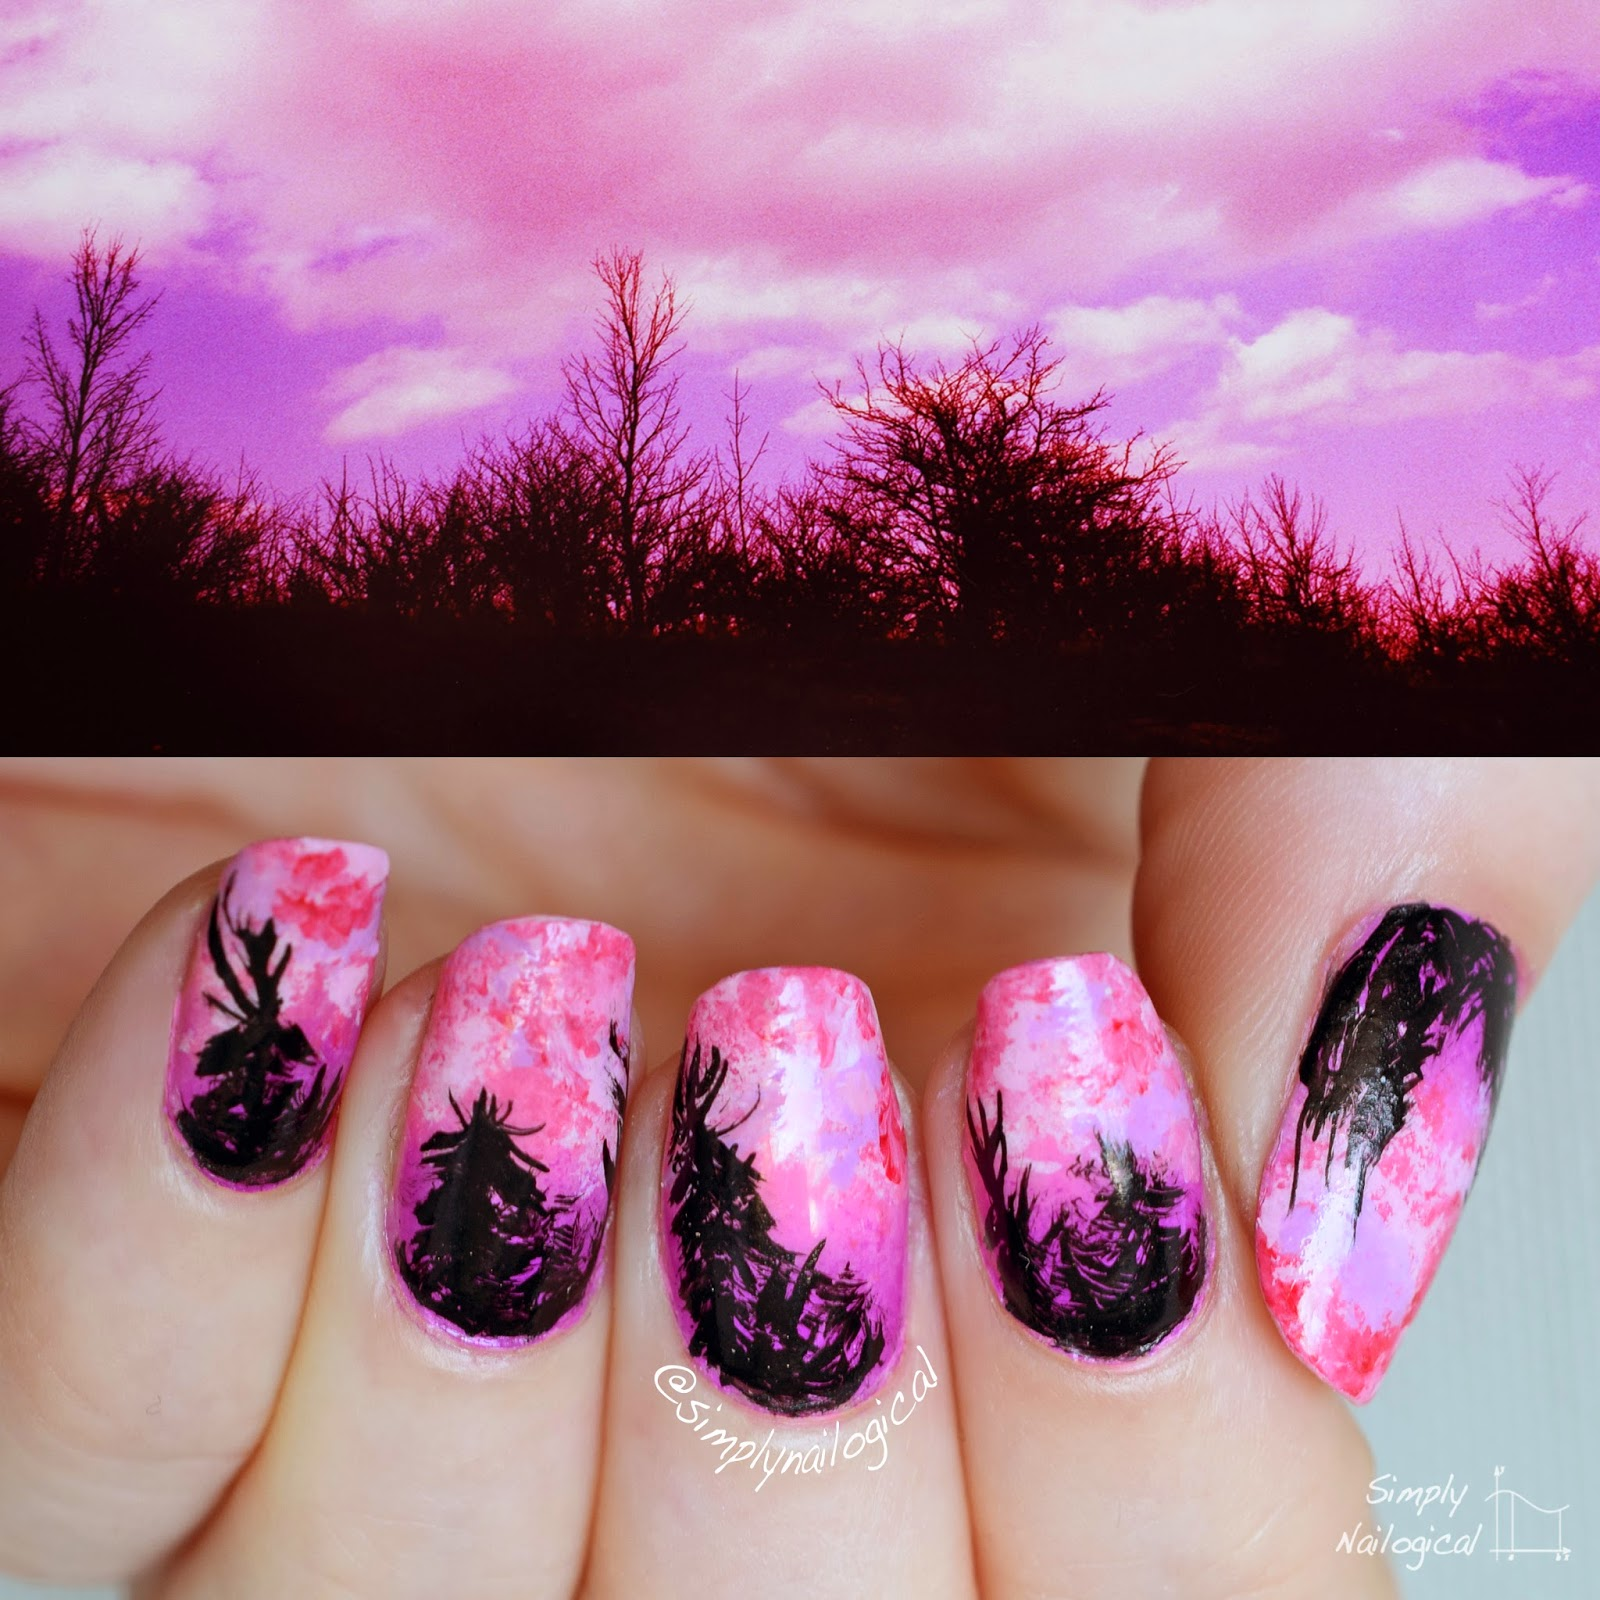 Simply Nailogical Nail Art: Simply Nailogical: Forest Silhouette Over Pink And Purple